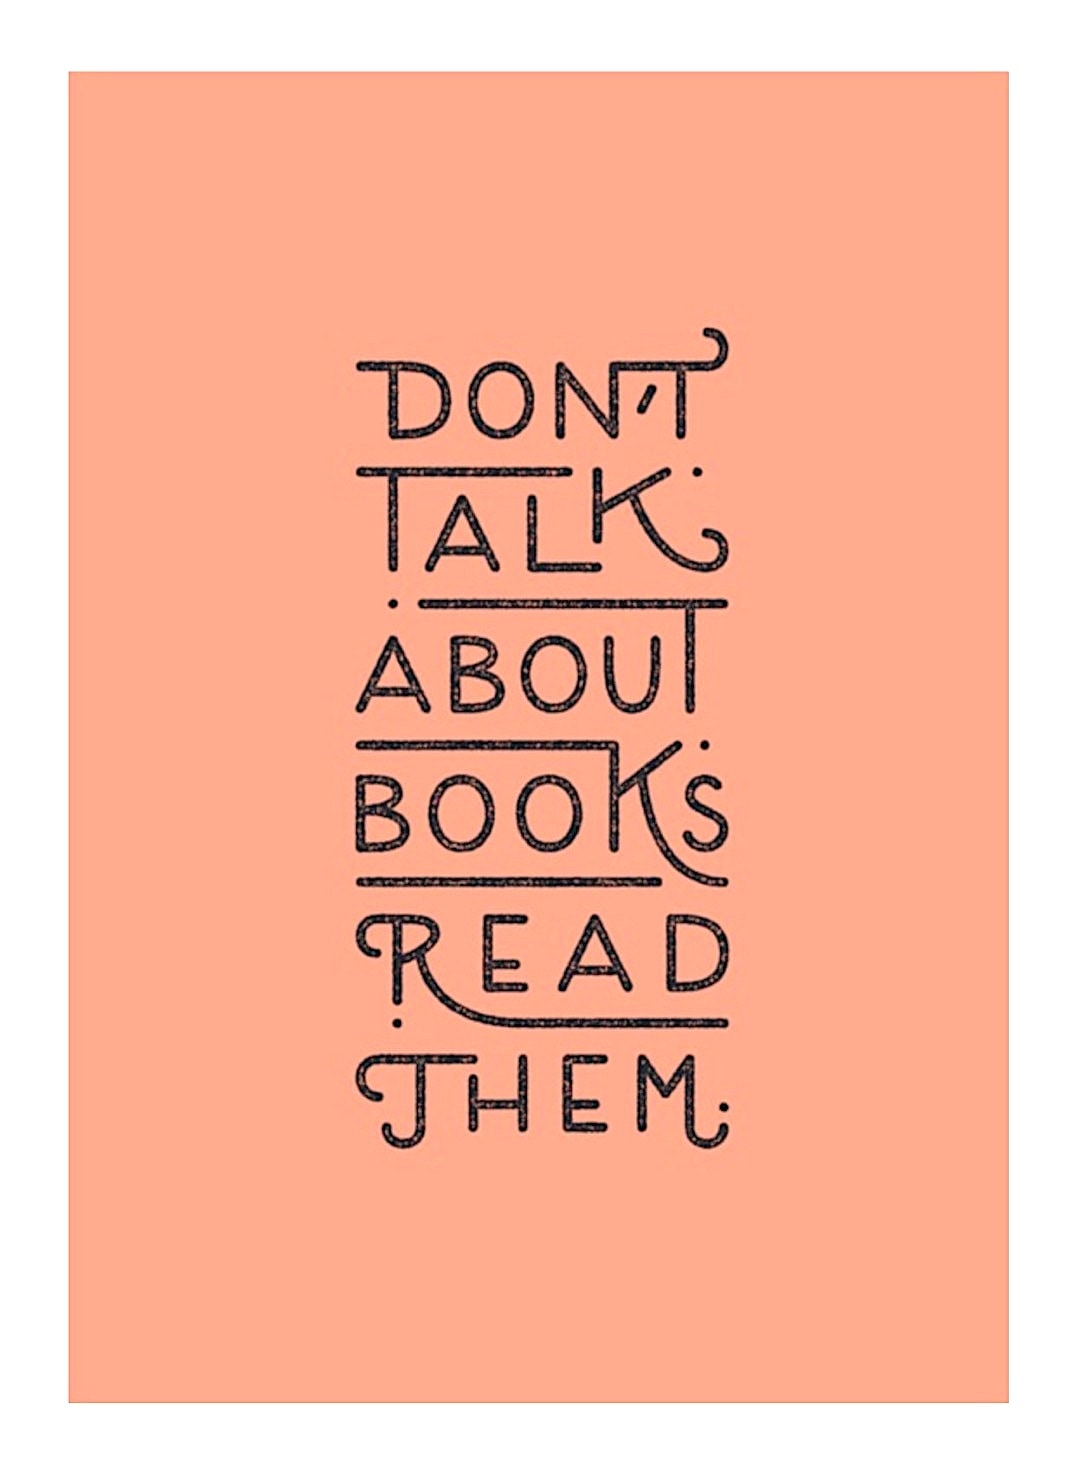 Don't talk about book read them - best read posters